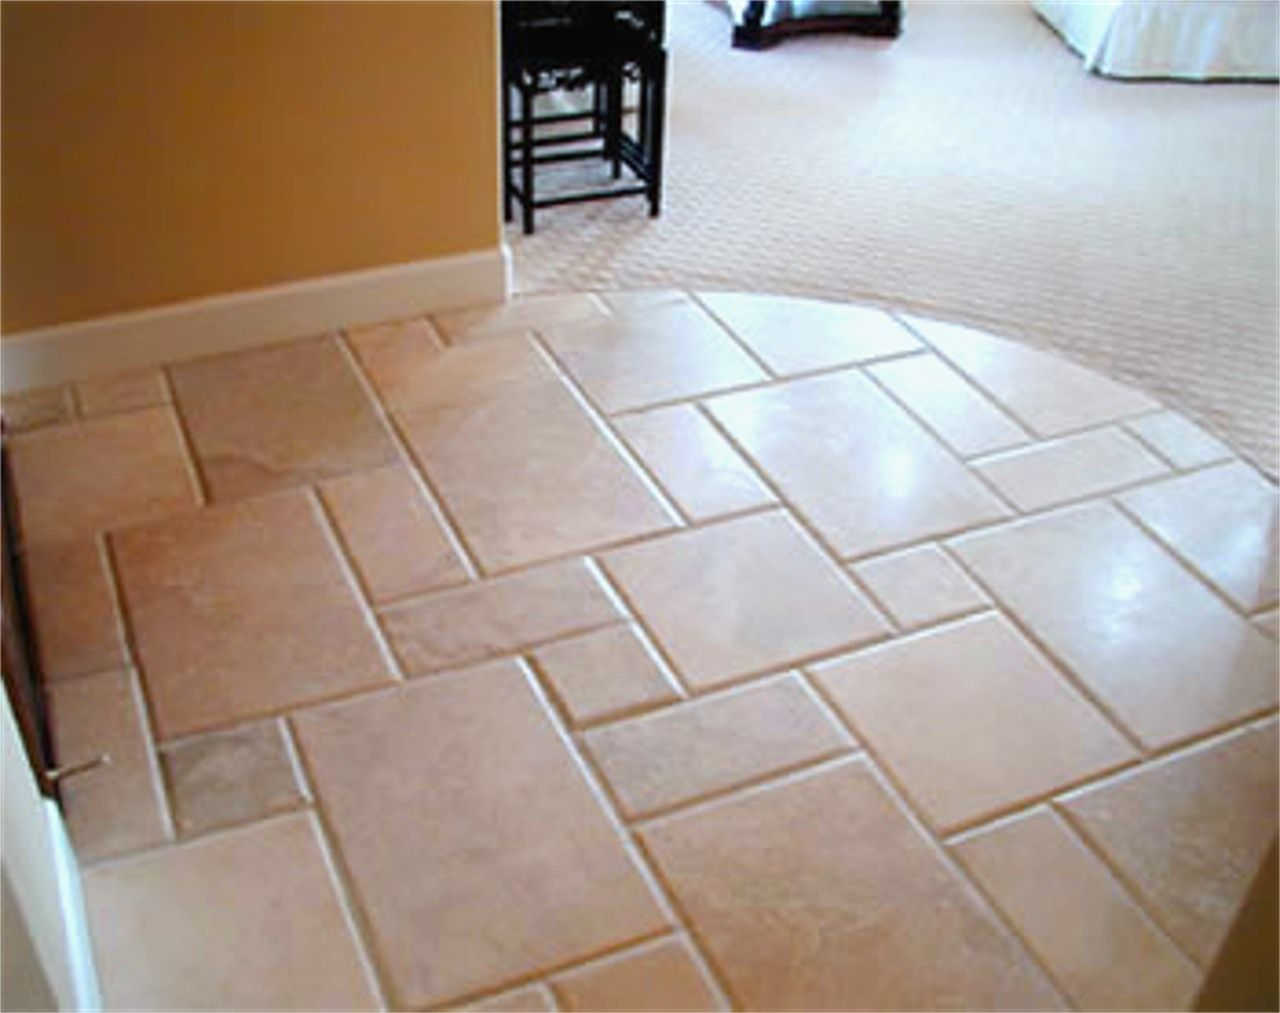 Porcelain Tile | Ceramic & Porcelain Tile Flooring - Burbank ...